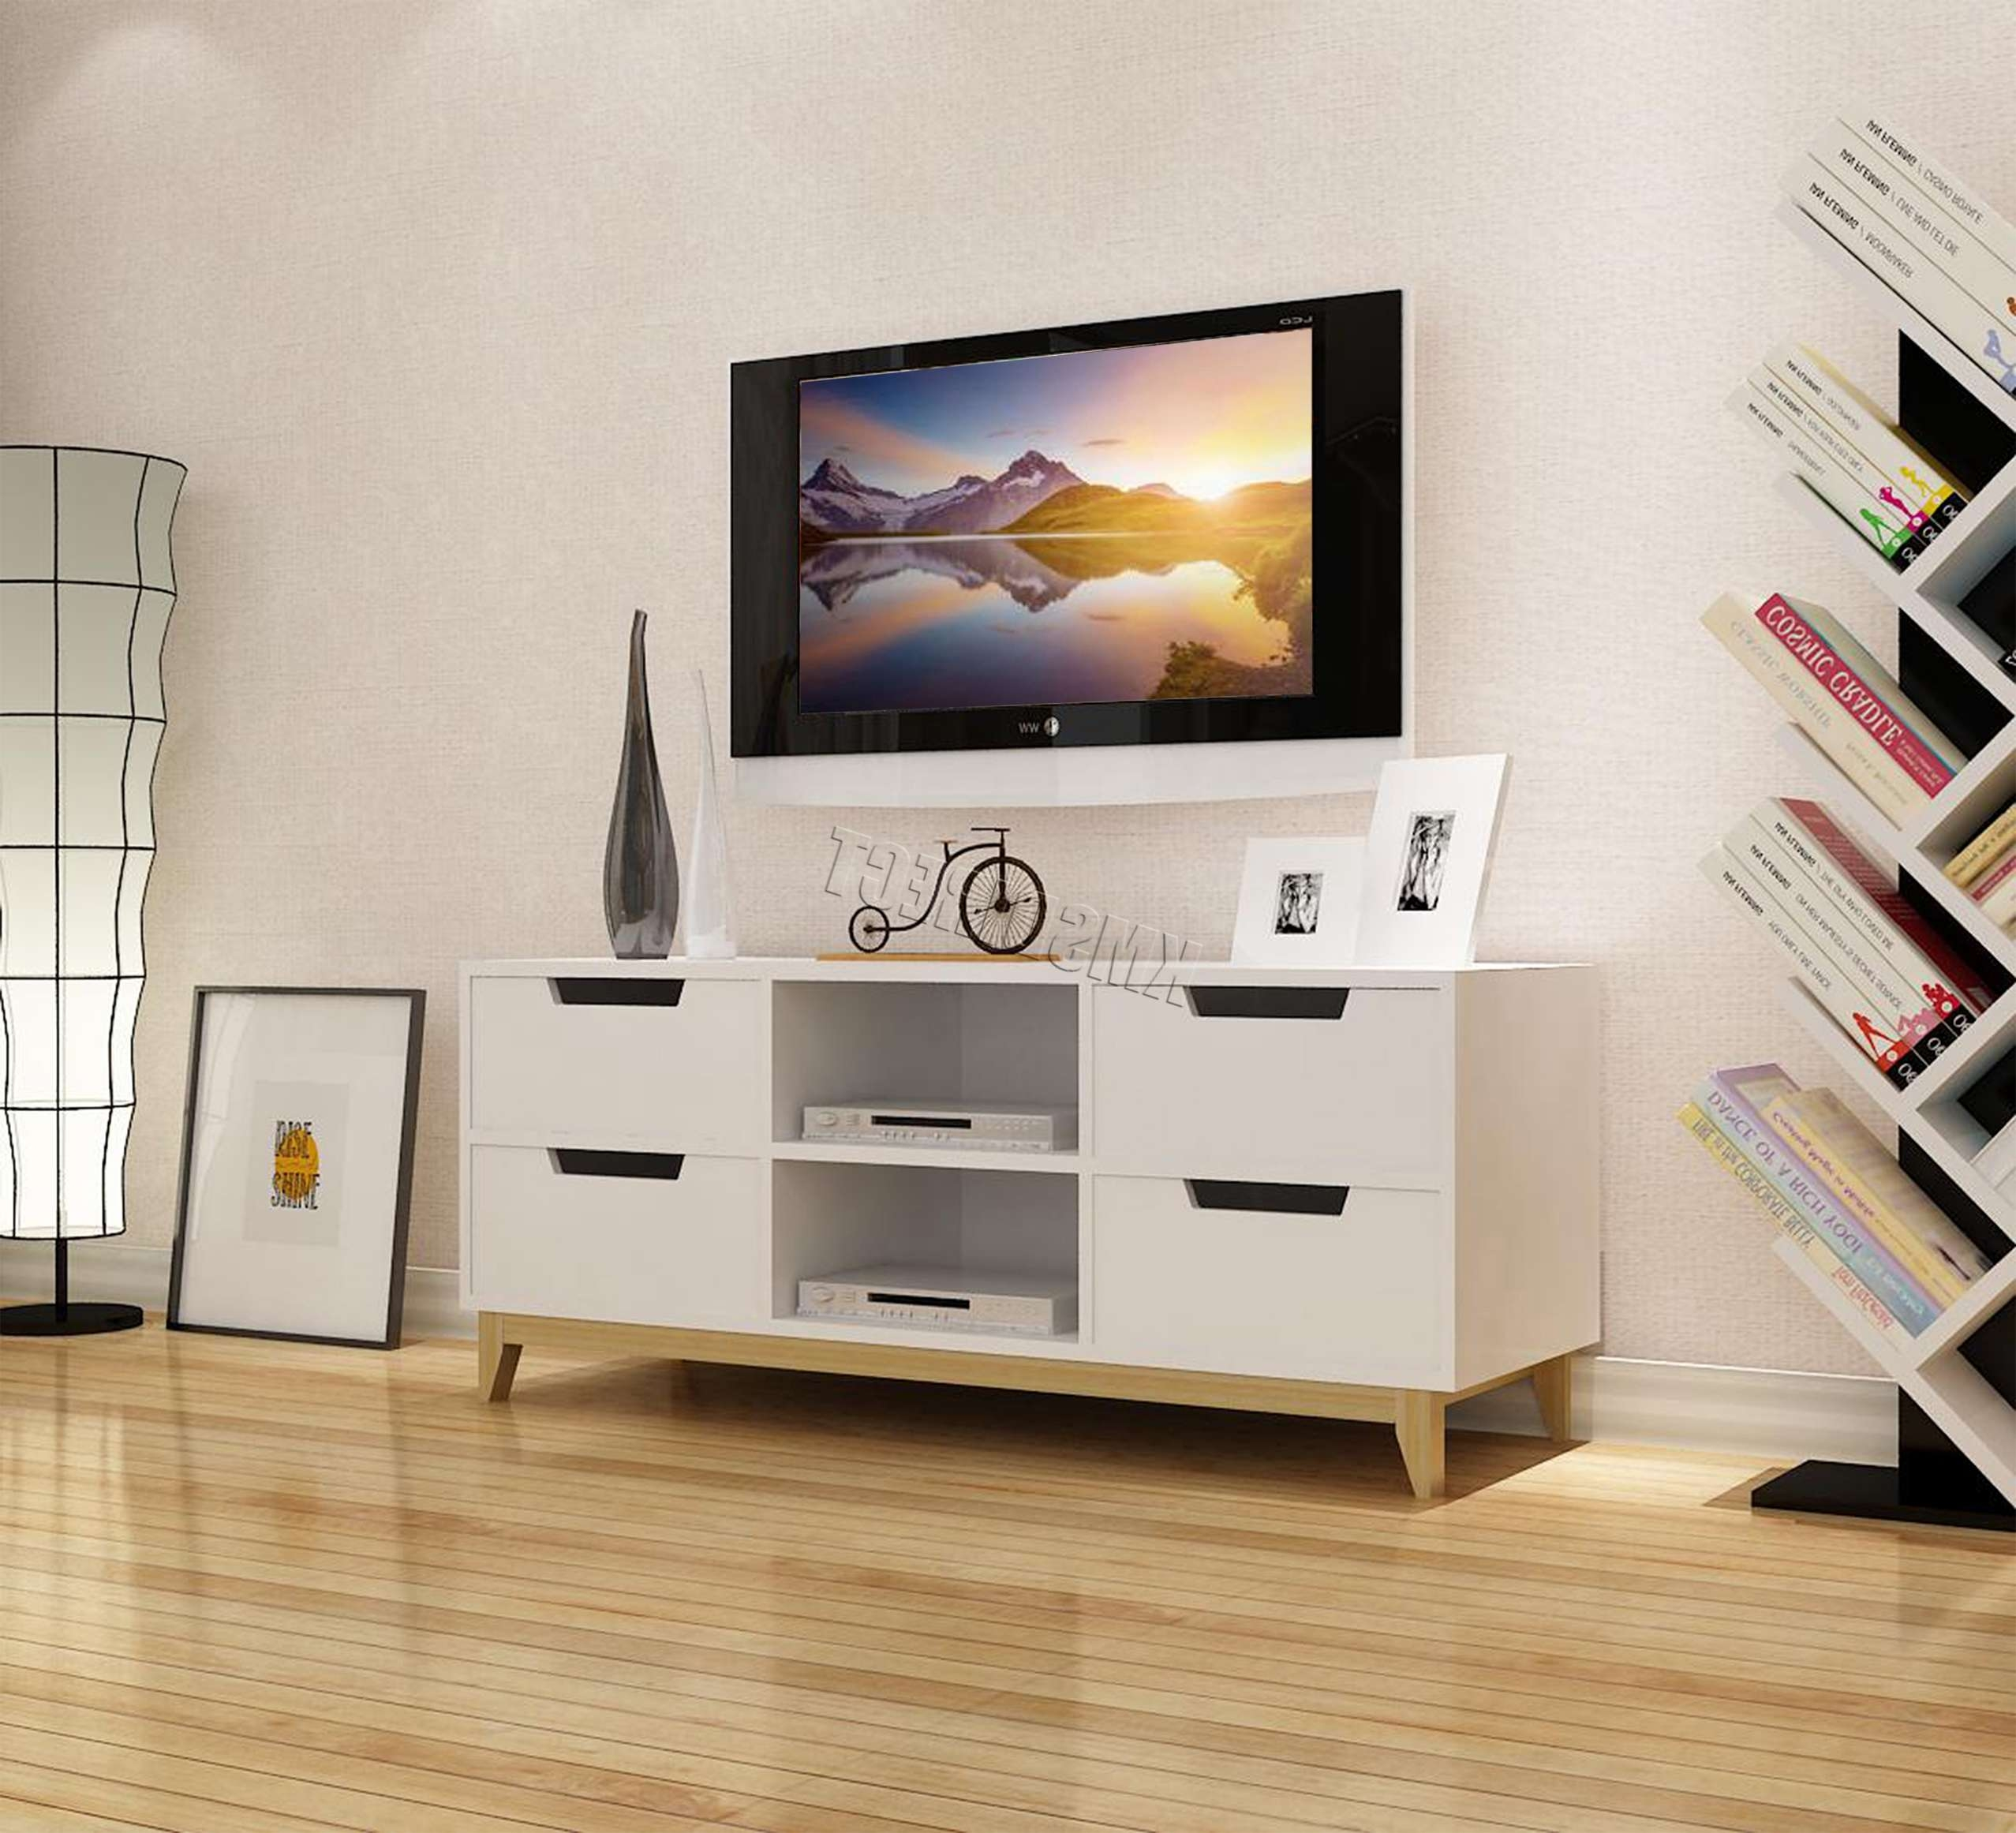 Foxhunter Mdf Tv Cabinet 4 Drawers 2 Layer Unit Stand Home 120cm Throughout Tv Cabinets With Drawers (View 18 of 20)